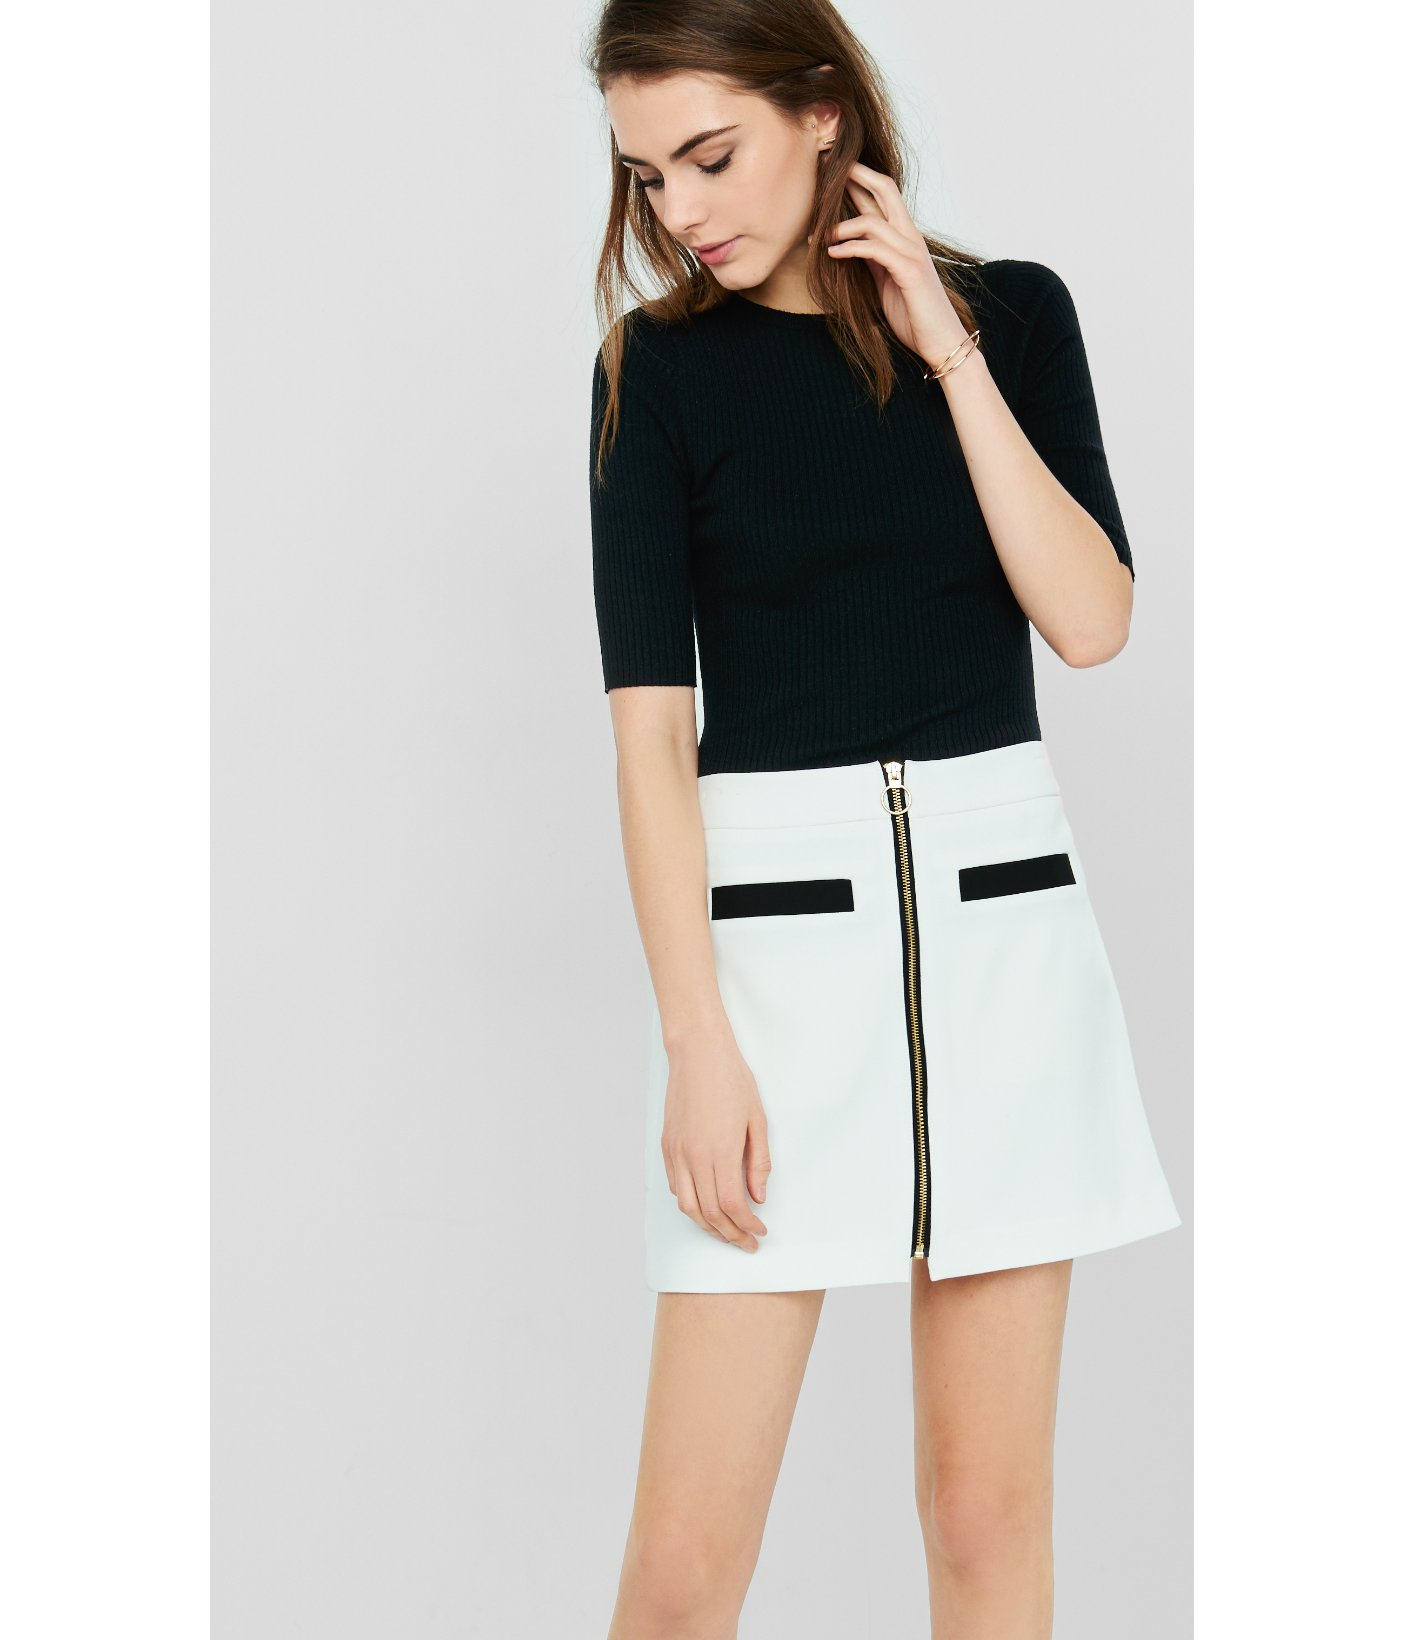 Express Color Block Zip Front A-line Skirt in White | Lyst